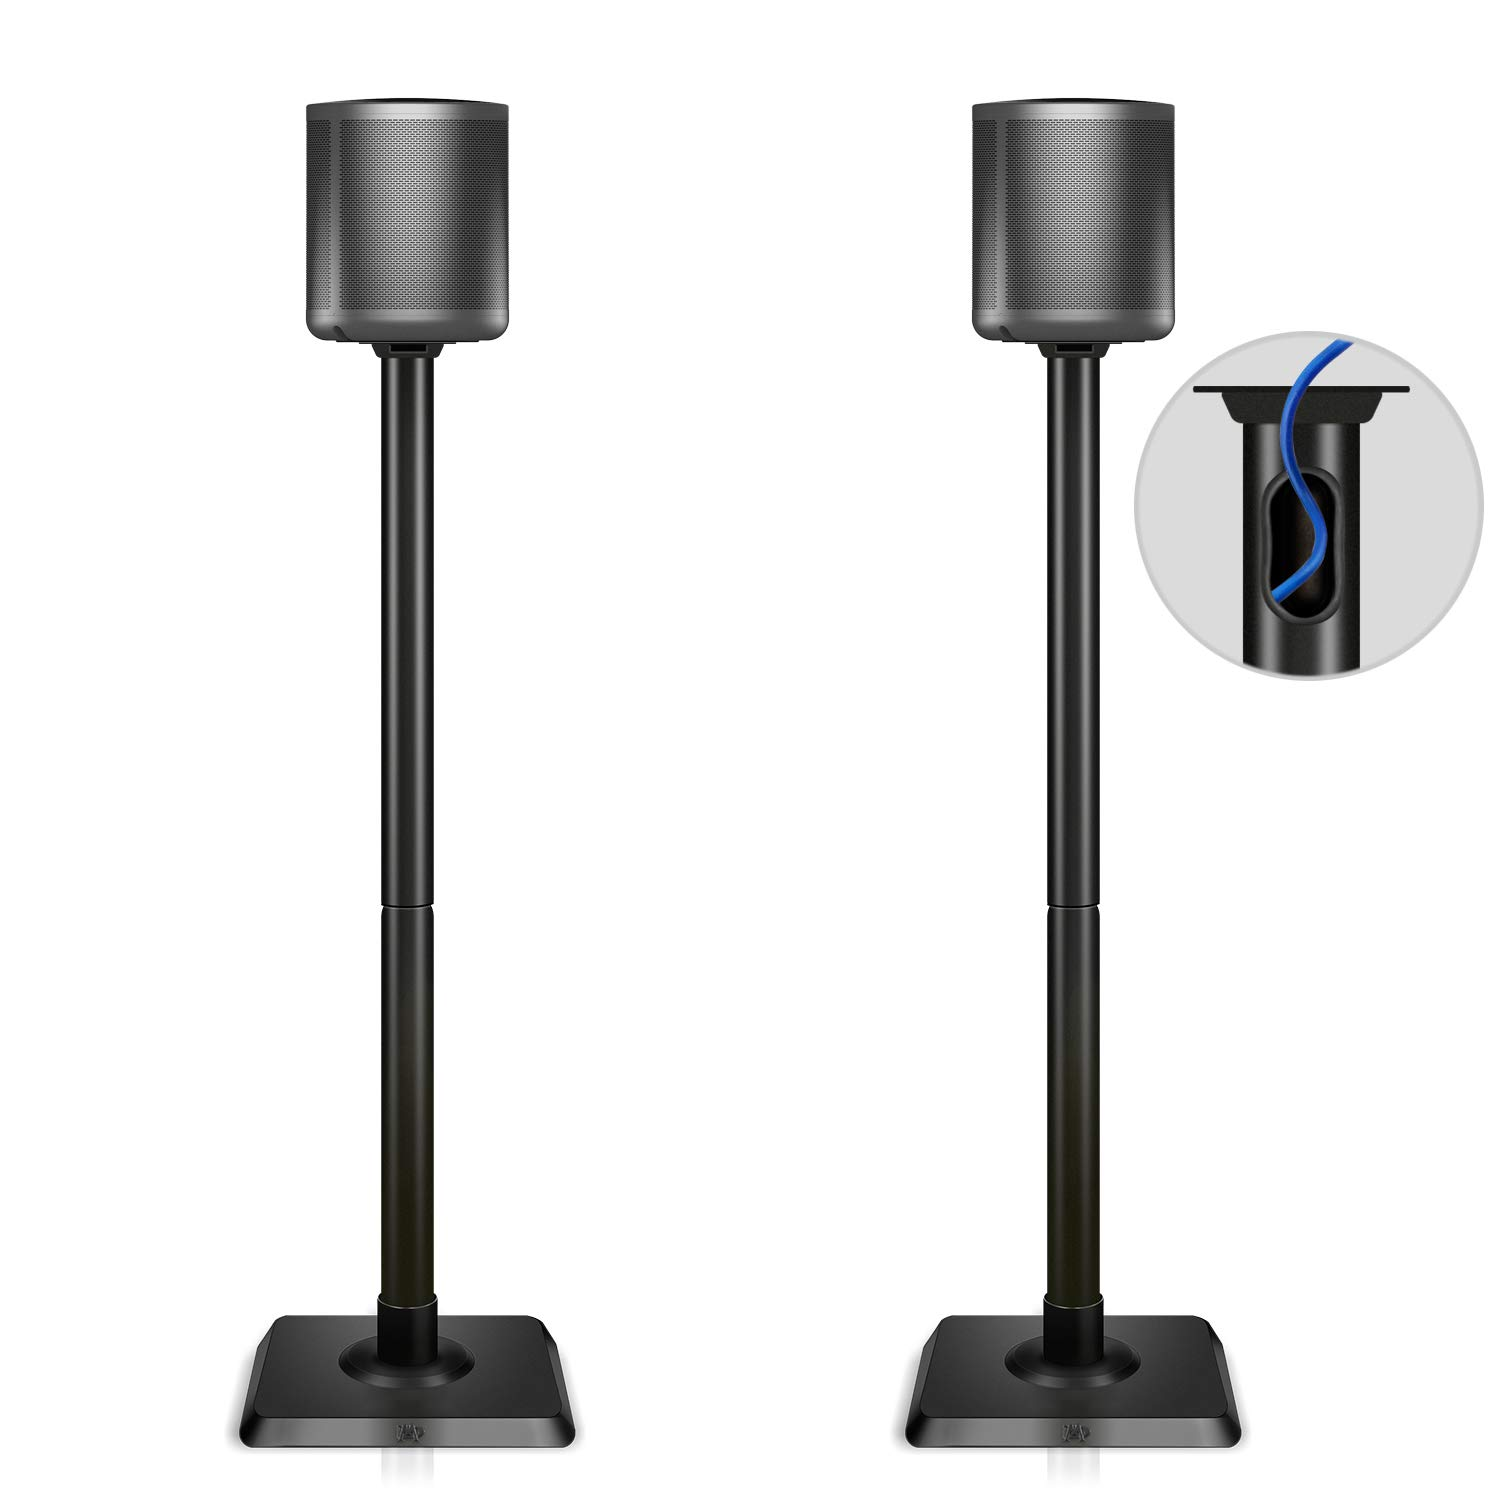 Mounting Dream Speaker Stand Pair for Home Theater Surround Sound Satellite Speakers, Set of 2 Floor Stand Mounts Built-in Cable Management Universal compatibility with 11LBS Capacity Per Stand MD5402